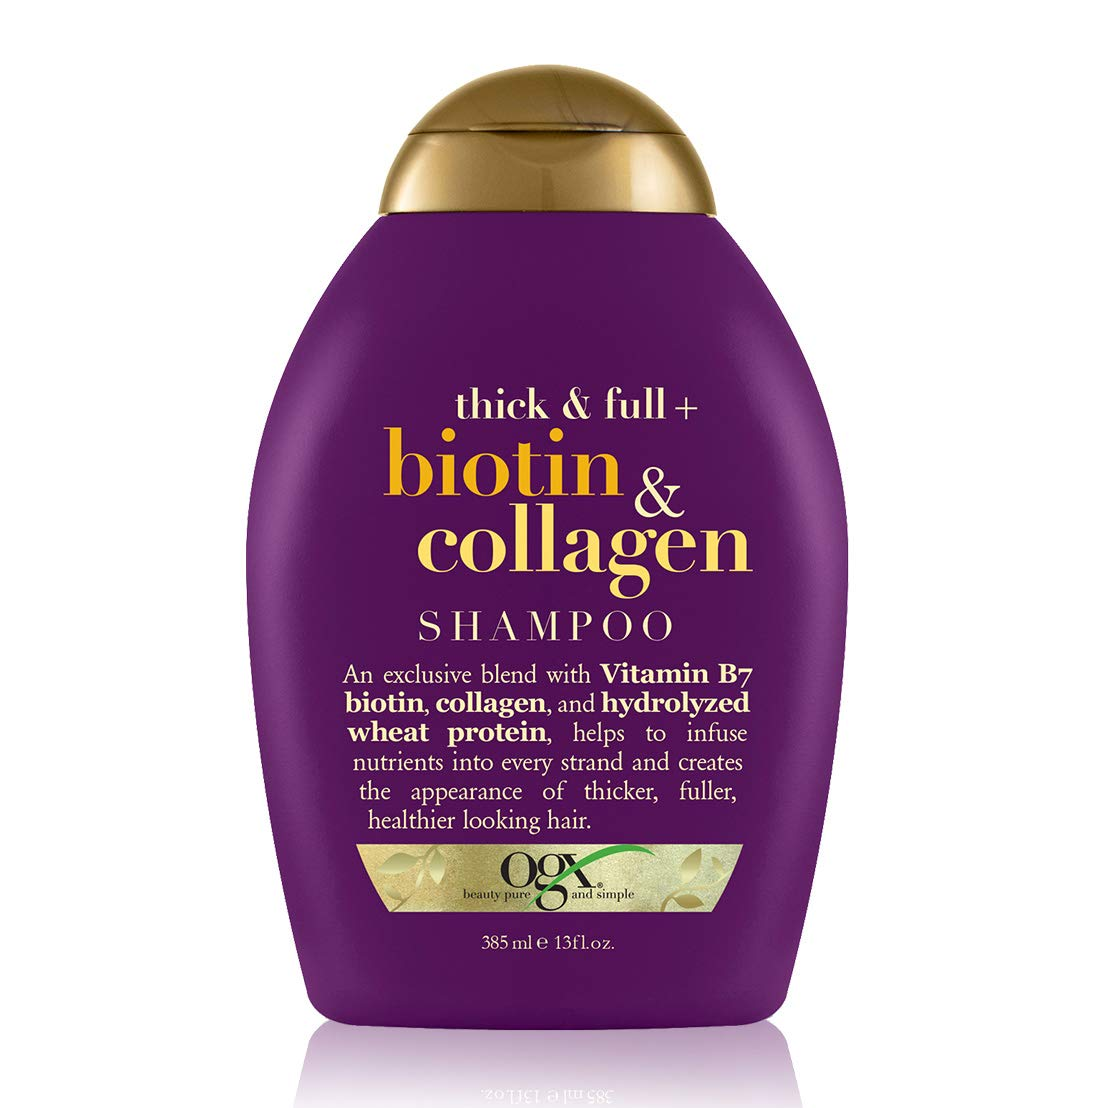 OGX Thick & Full + Biotin & Collagen Volumizing Shampoo for Thin Hair, Thickening Shampoo with Vitamin B7 & Hydrolyzed Wheat Protein, Paraben-Free, Sulfate-Free Surfactants, 13 fl oz